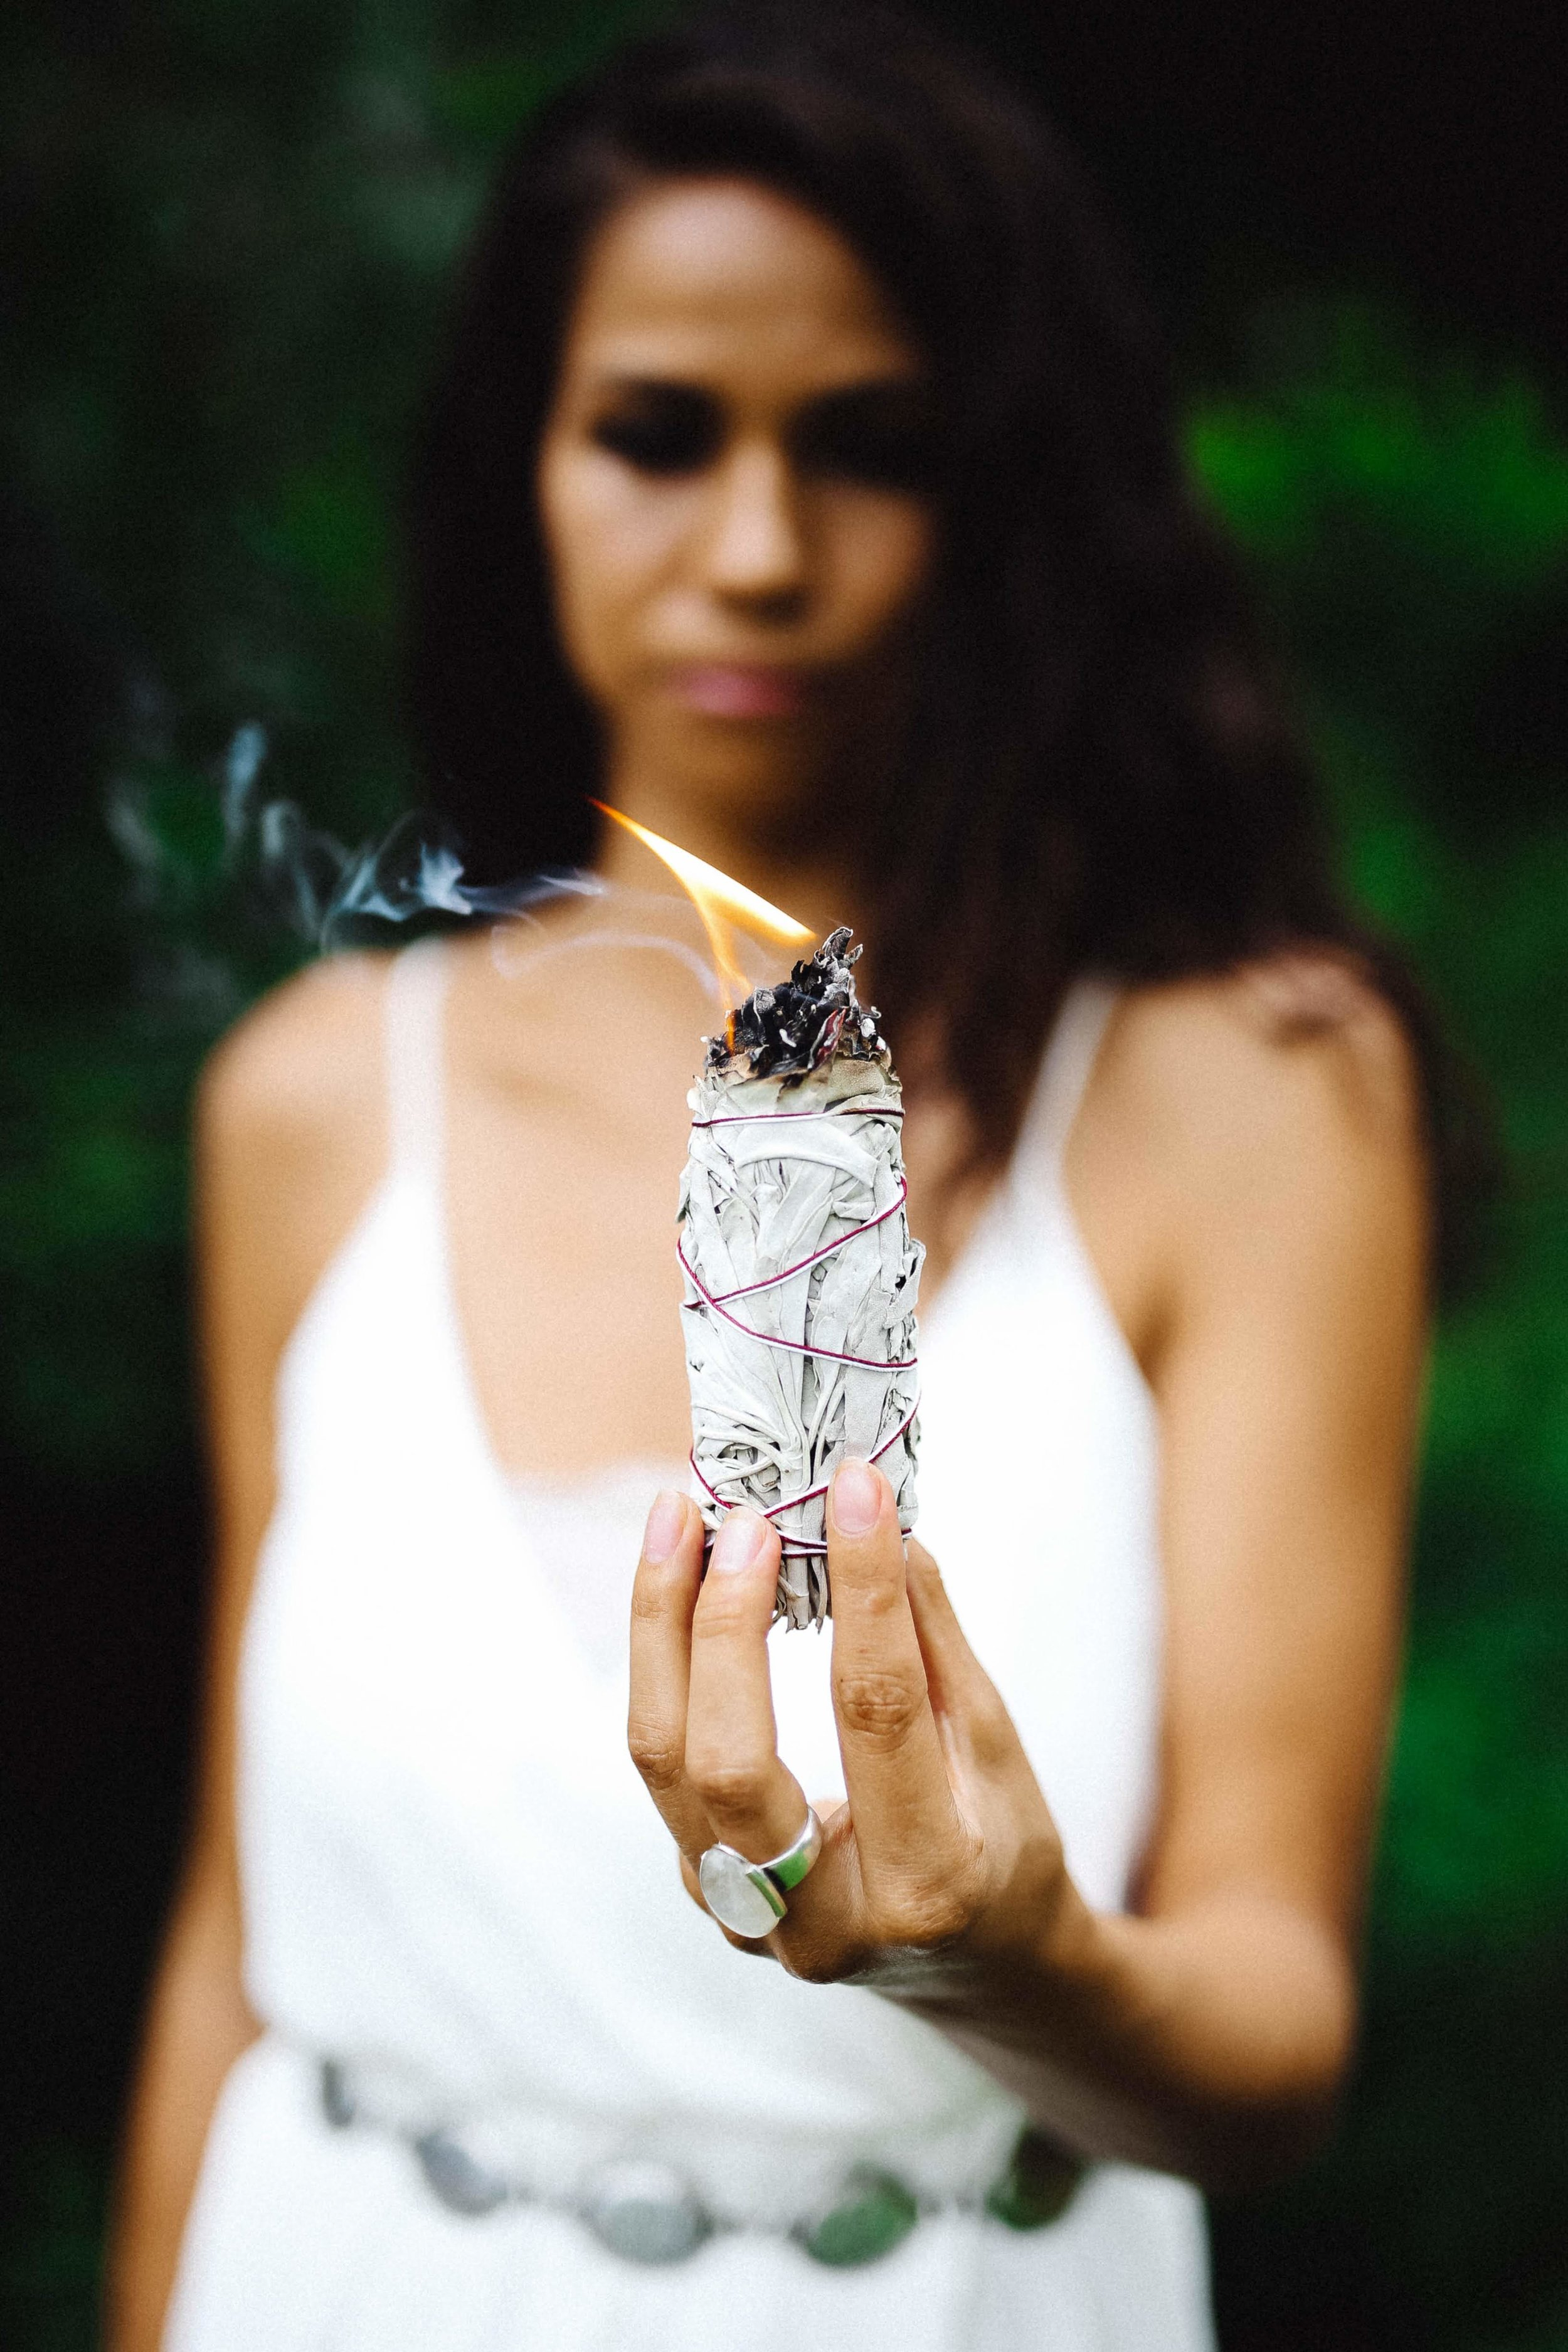 sage and healing vibes